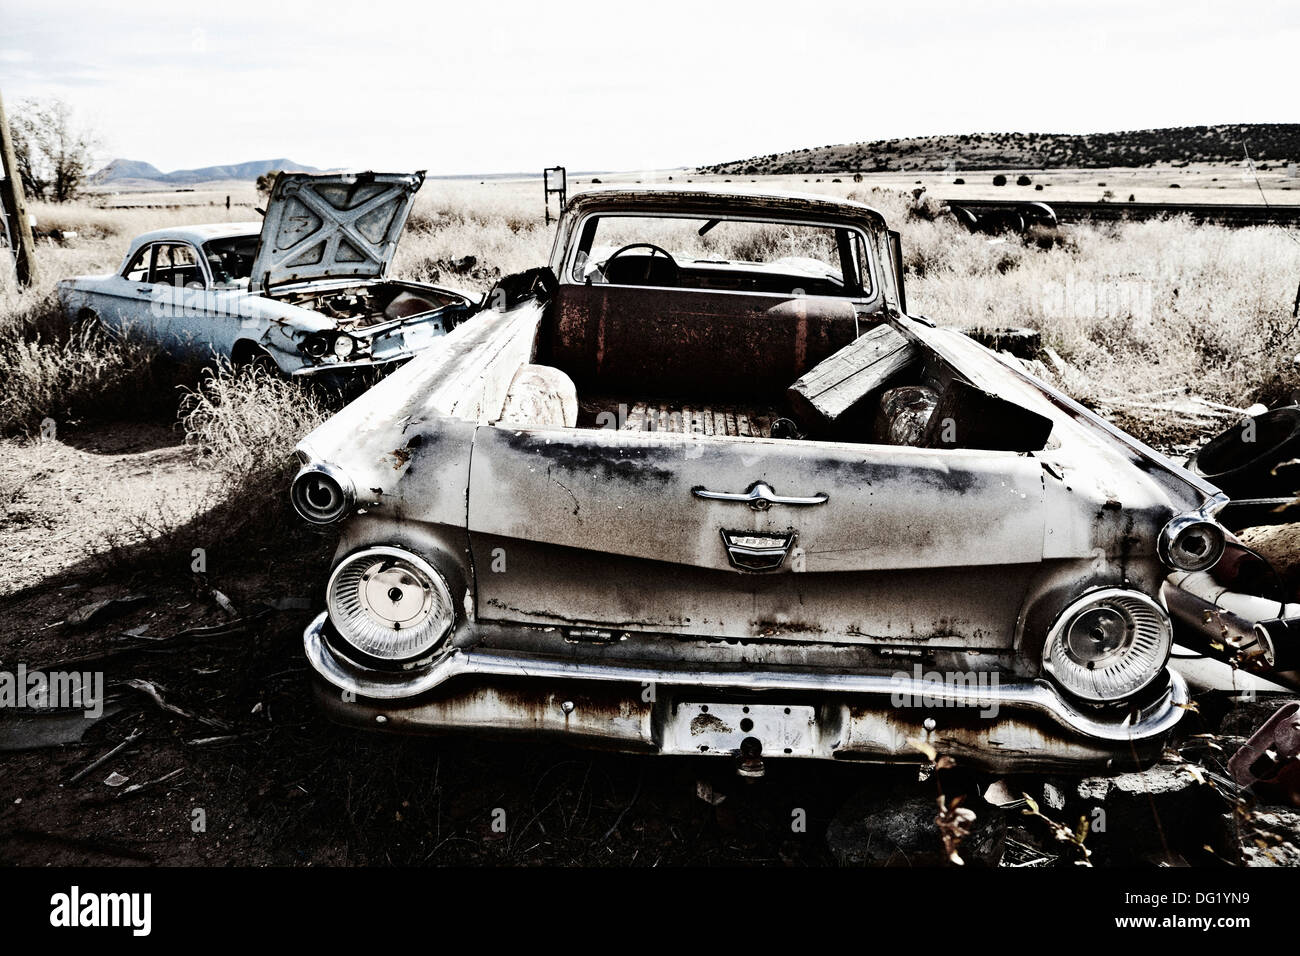 Two Old Abandoned Cars in Desert - Stock Image